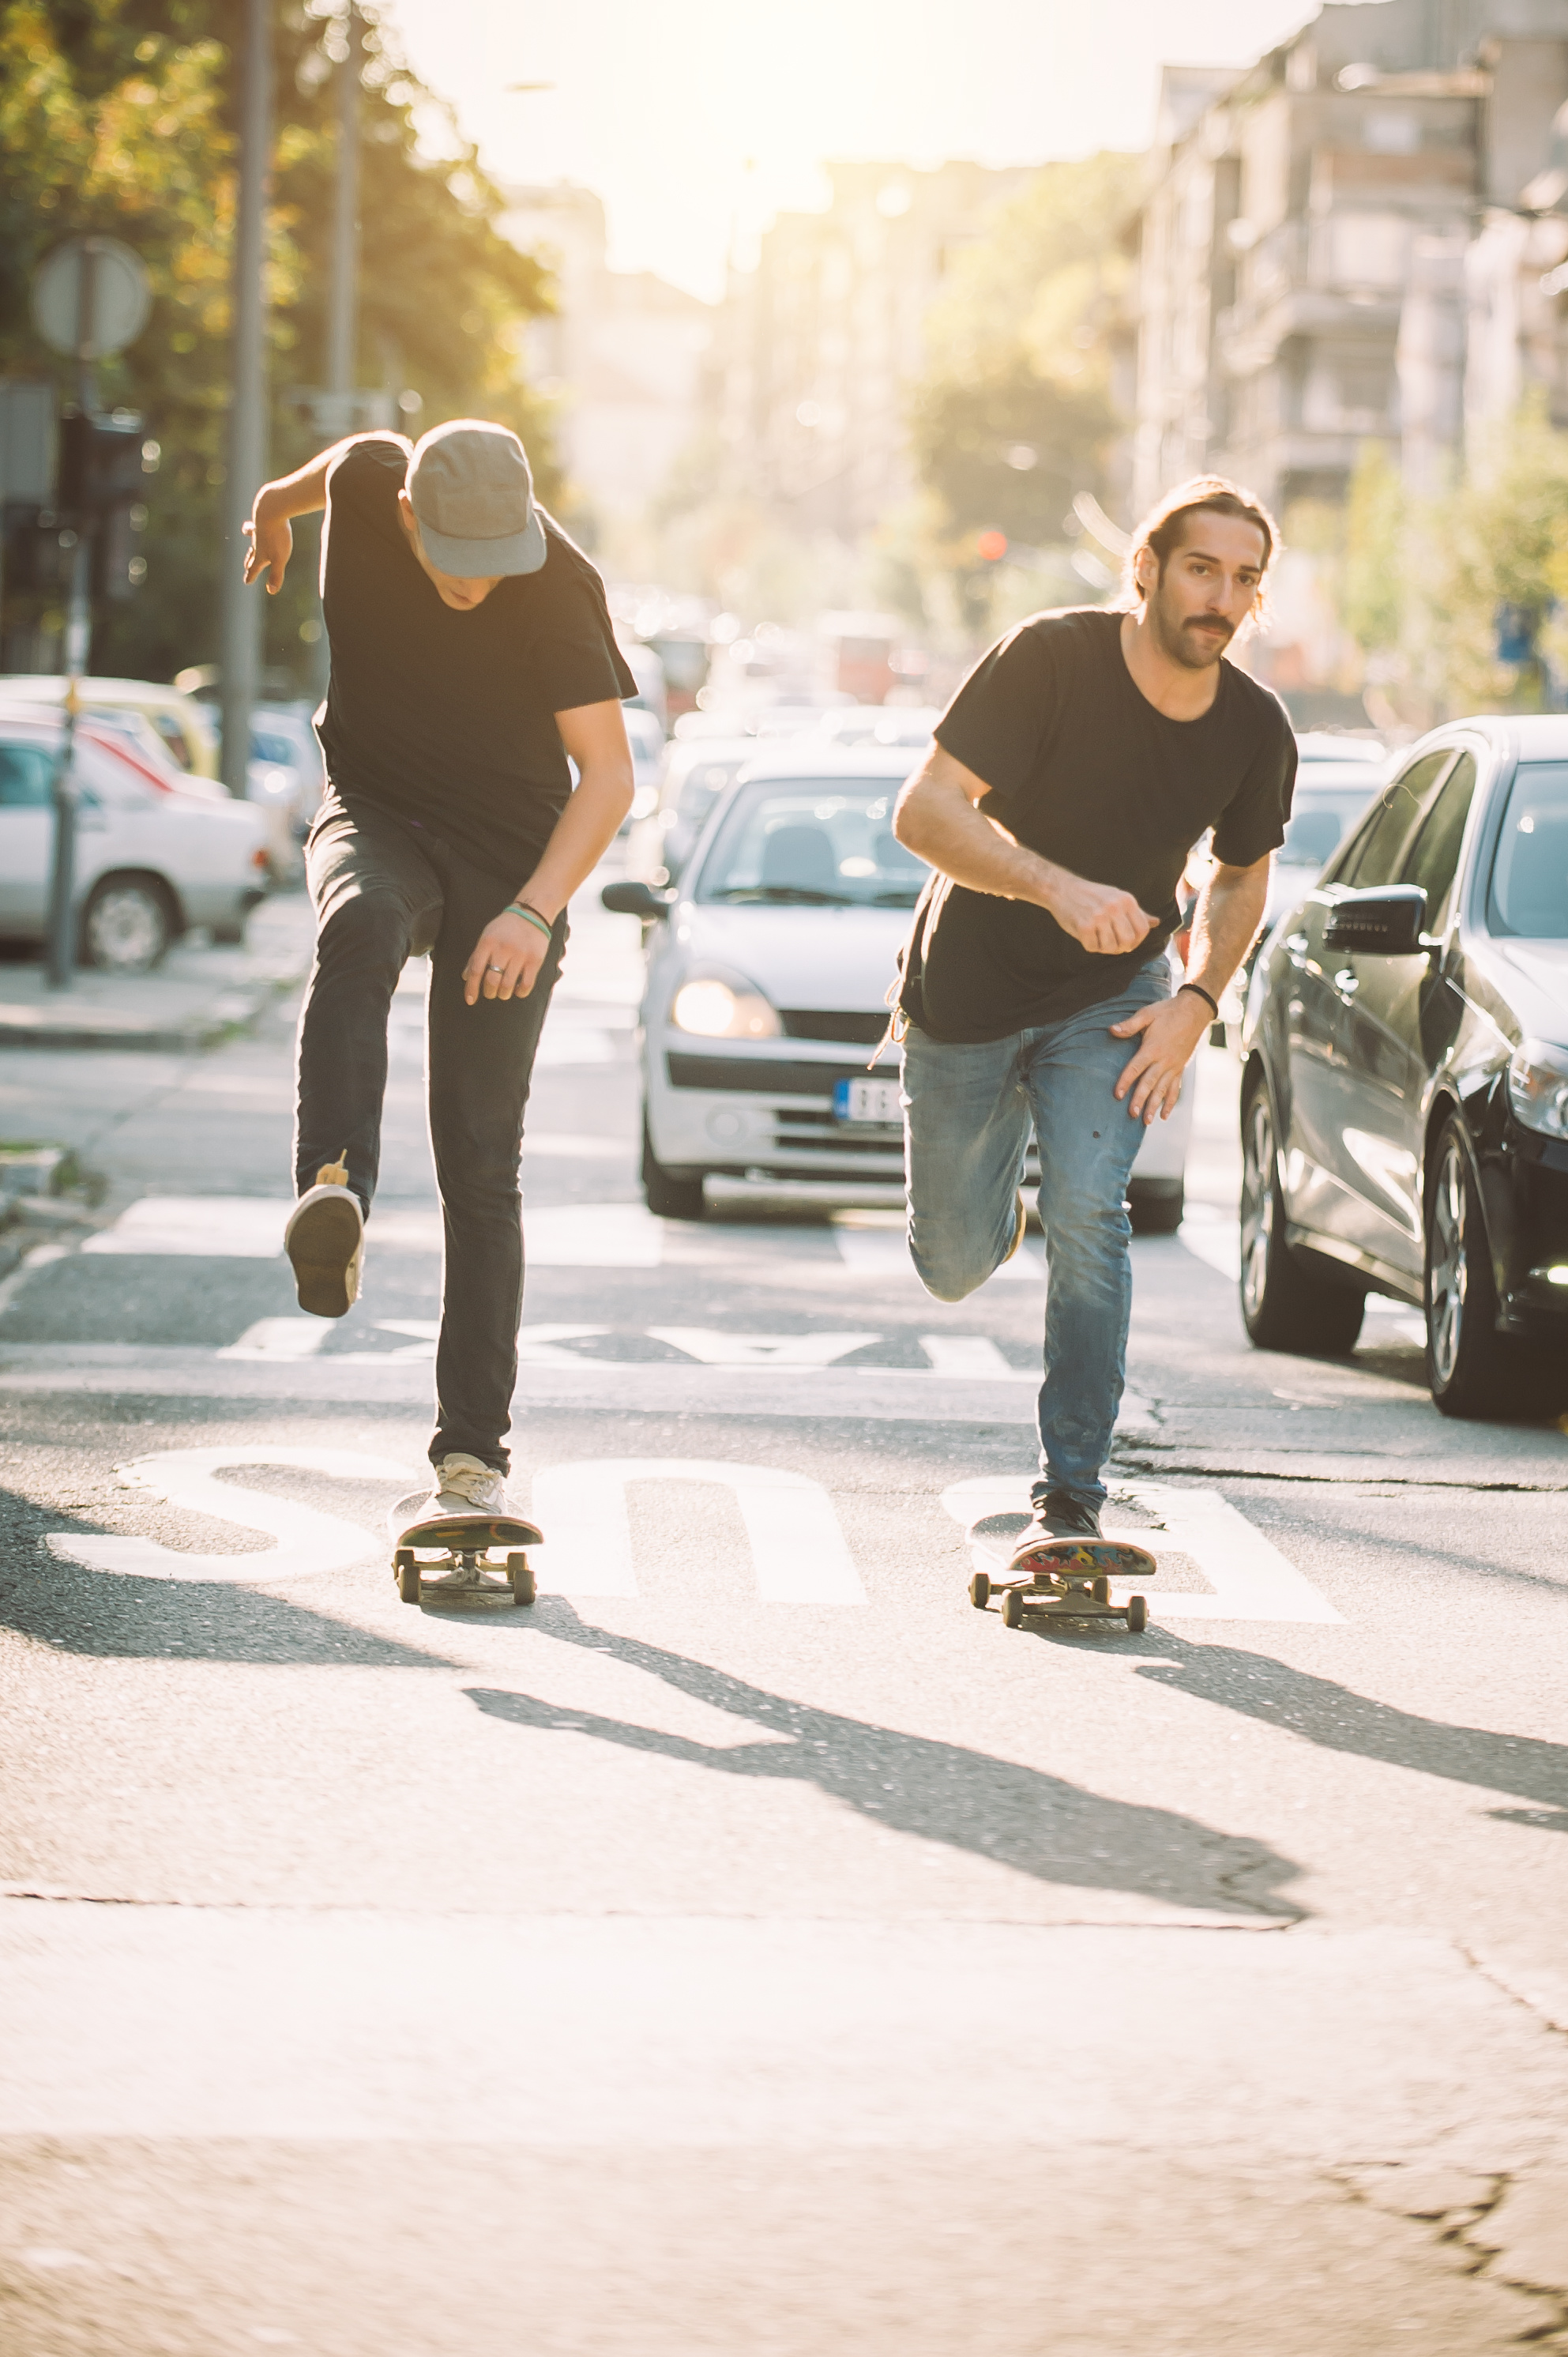 image of two males both riding skateboards in the bus/taxi lane through traffic